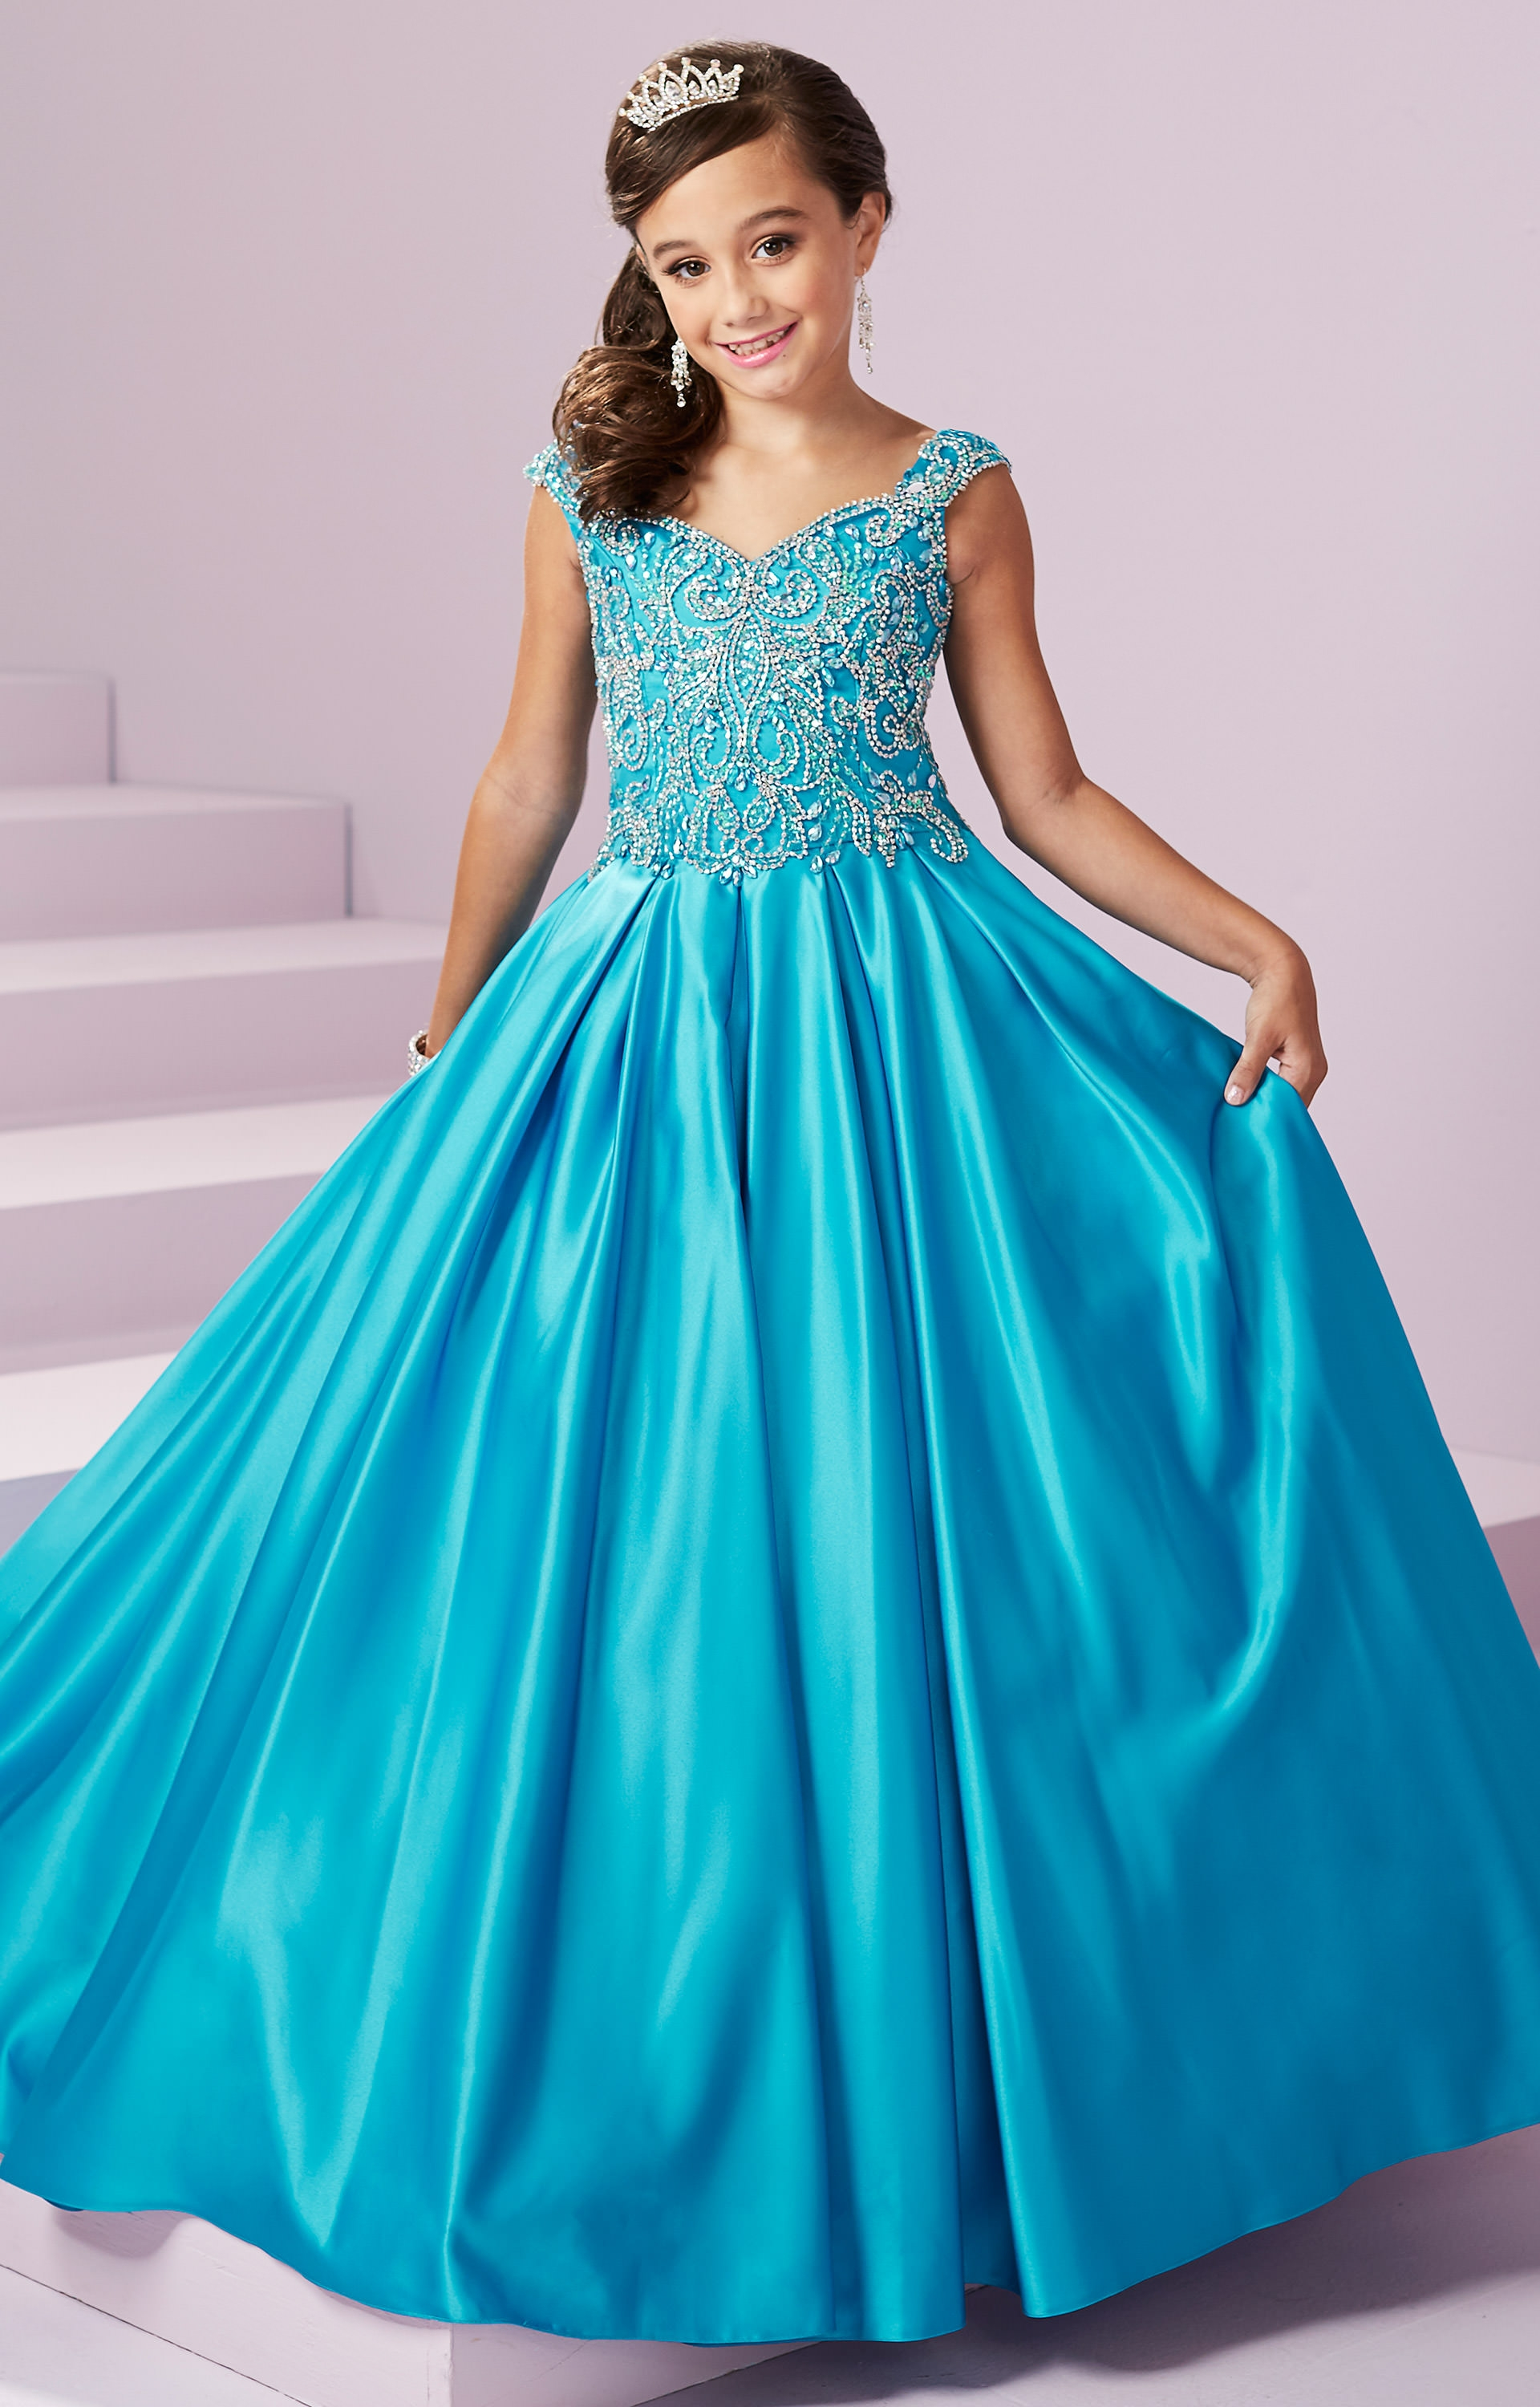 Tiffany Princess 13490 Corset Back Satin Ball Gown With